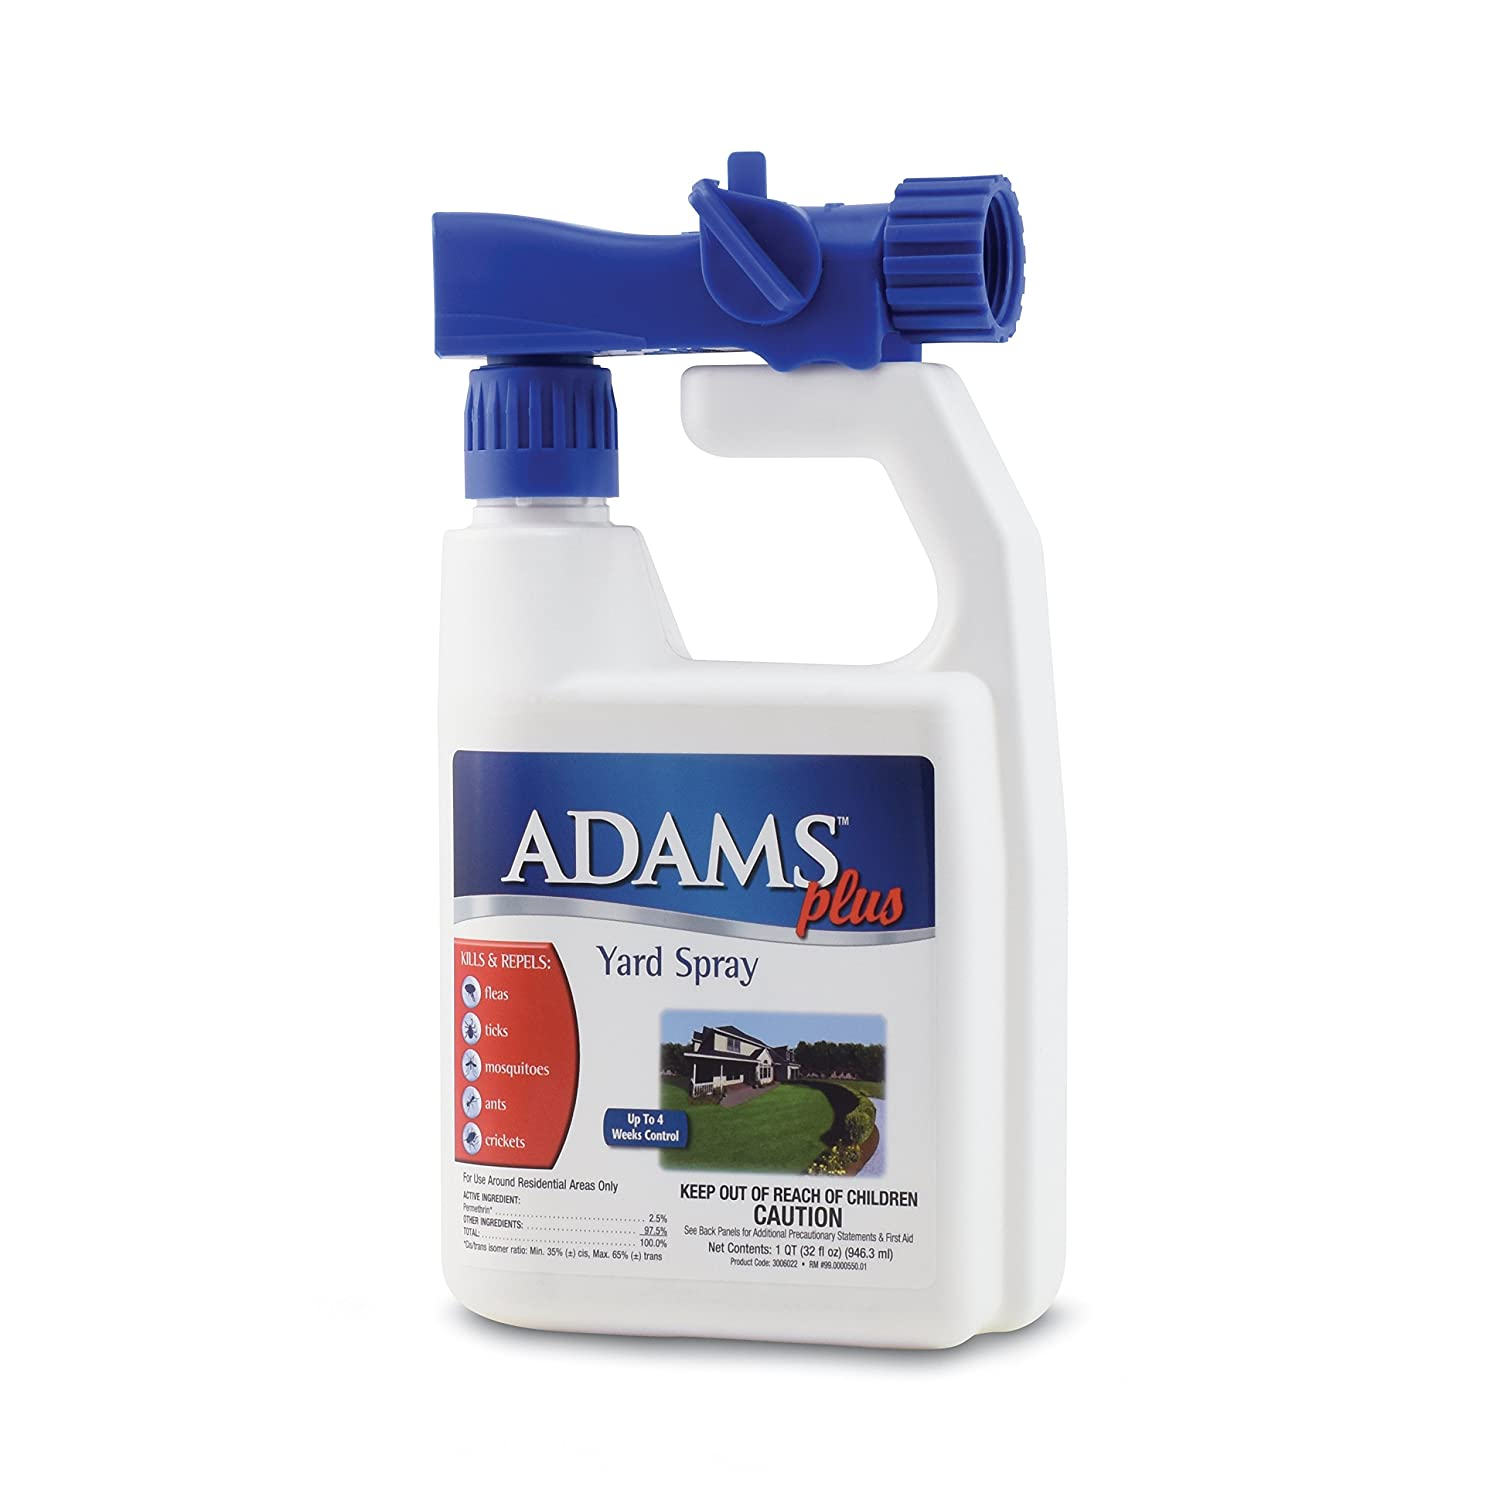 amazon com adams plus yard spray 32 oz home pest control